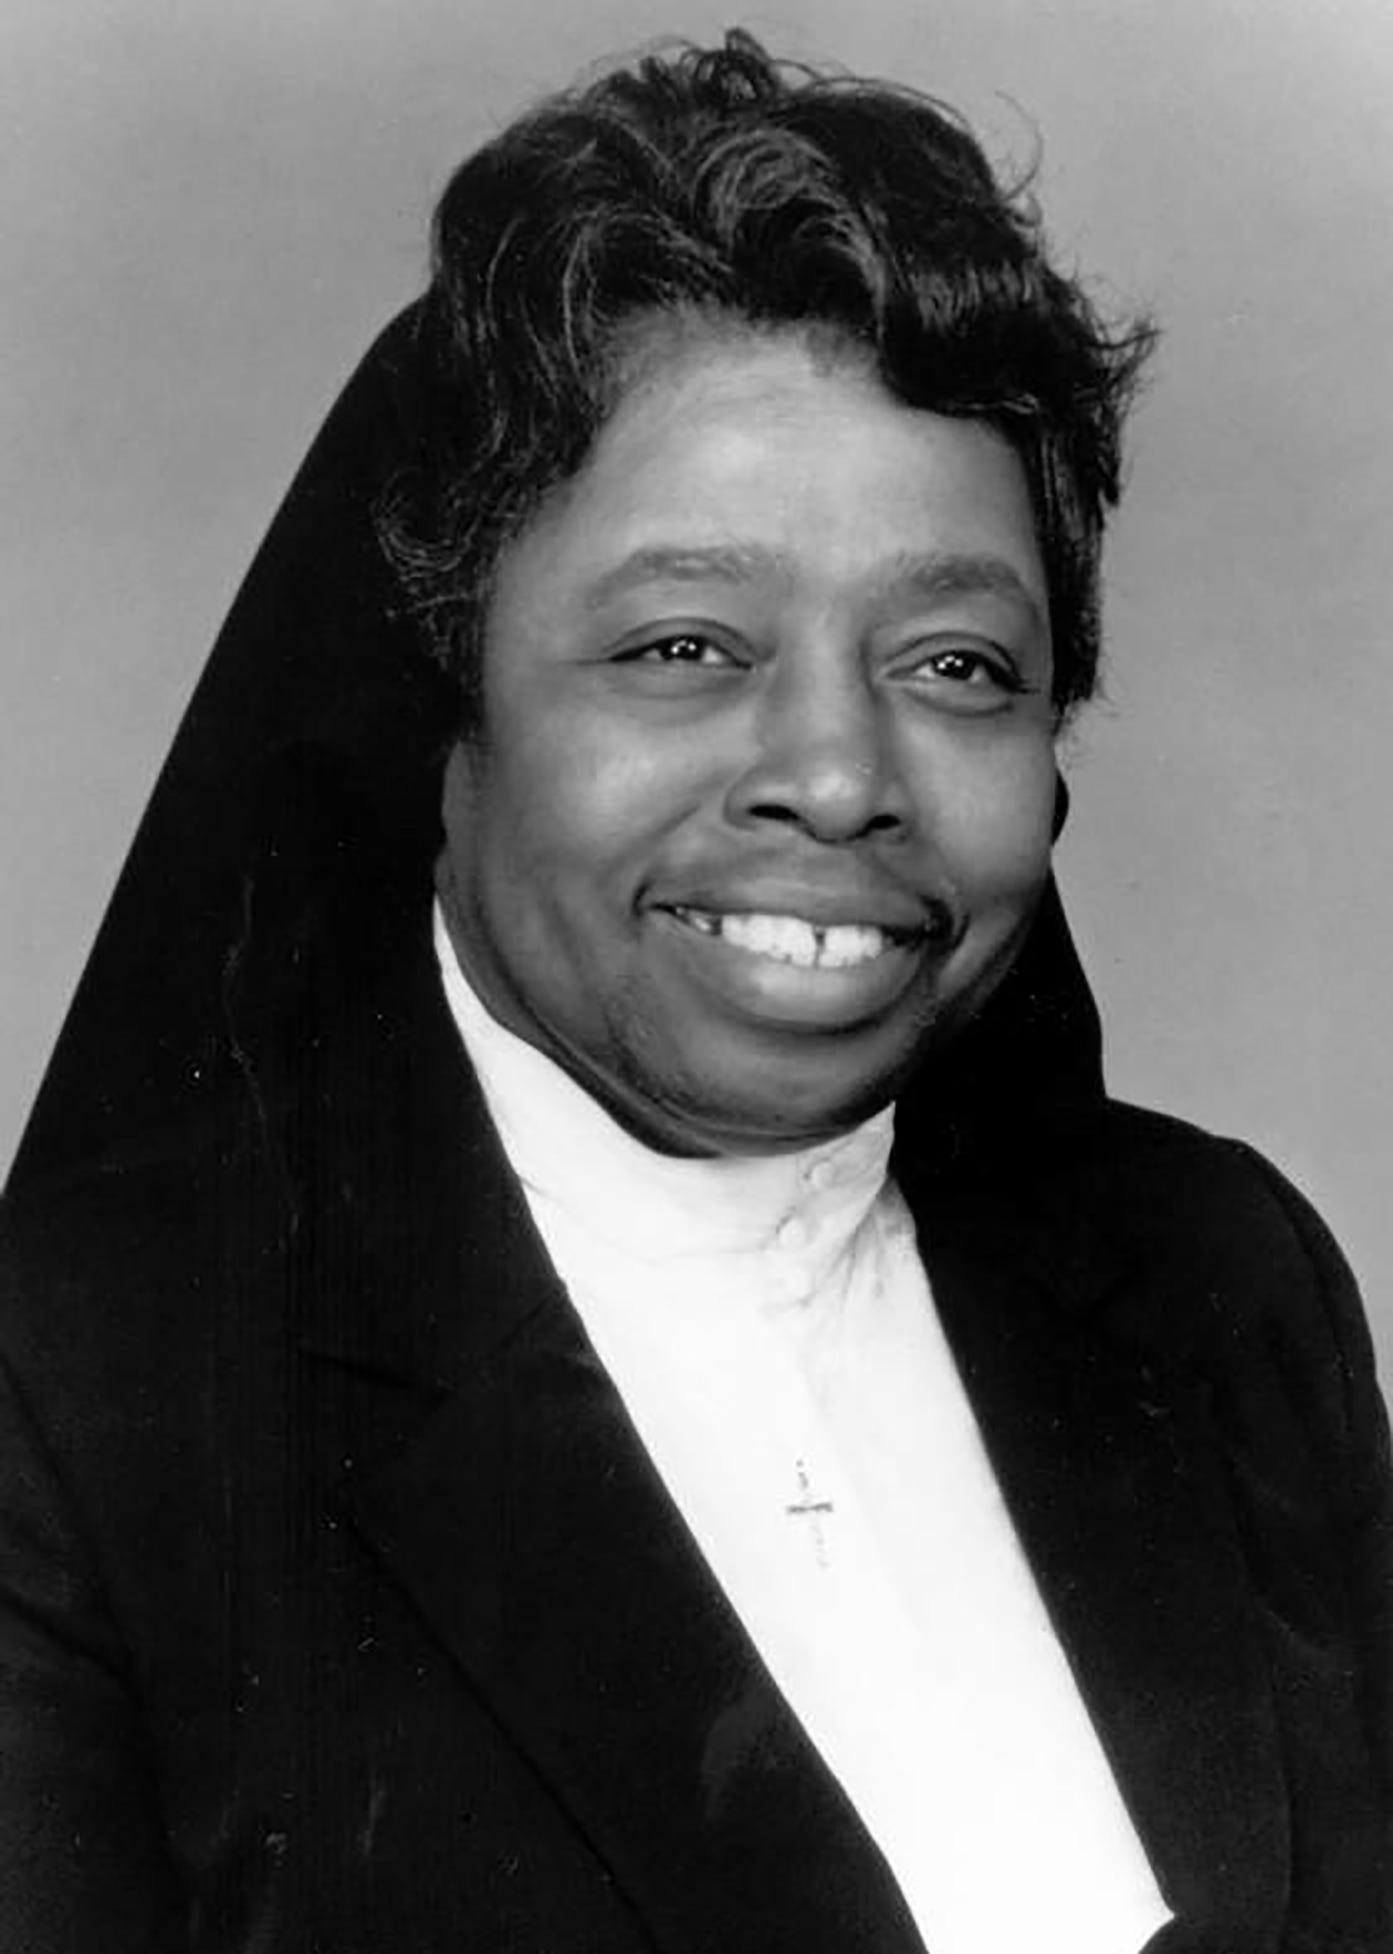 Sister Mary Charlotte Marshall, now 93, taught at Our Lady of Victory Catholic School, once located near 8 Mile and Wyoming in Detroit. She is a member of the first congregation for women of color in the United States, founded in Baltimore in 1829. The school was established in the 1940s to teach Black students who lived in Detroit and in Royal Oak Township, across 8 Mile from the parish and school.